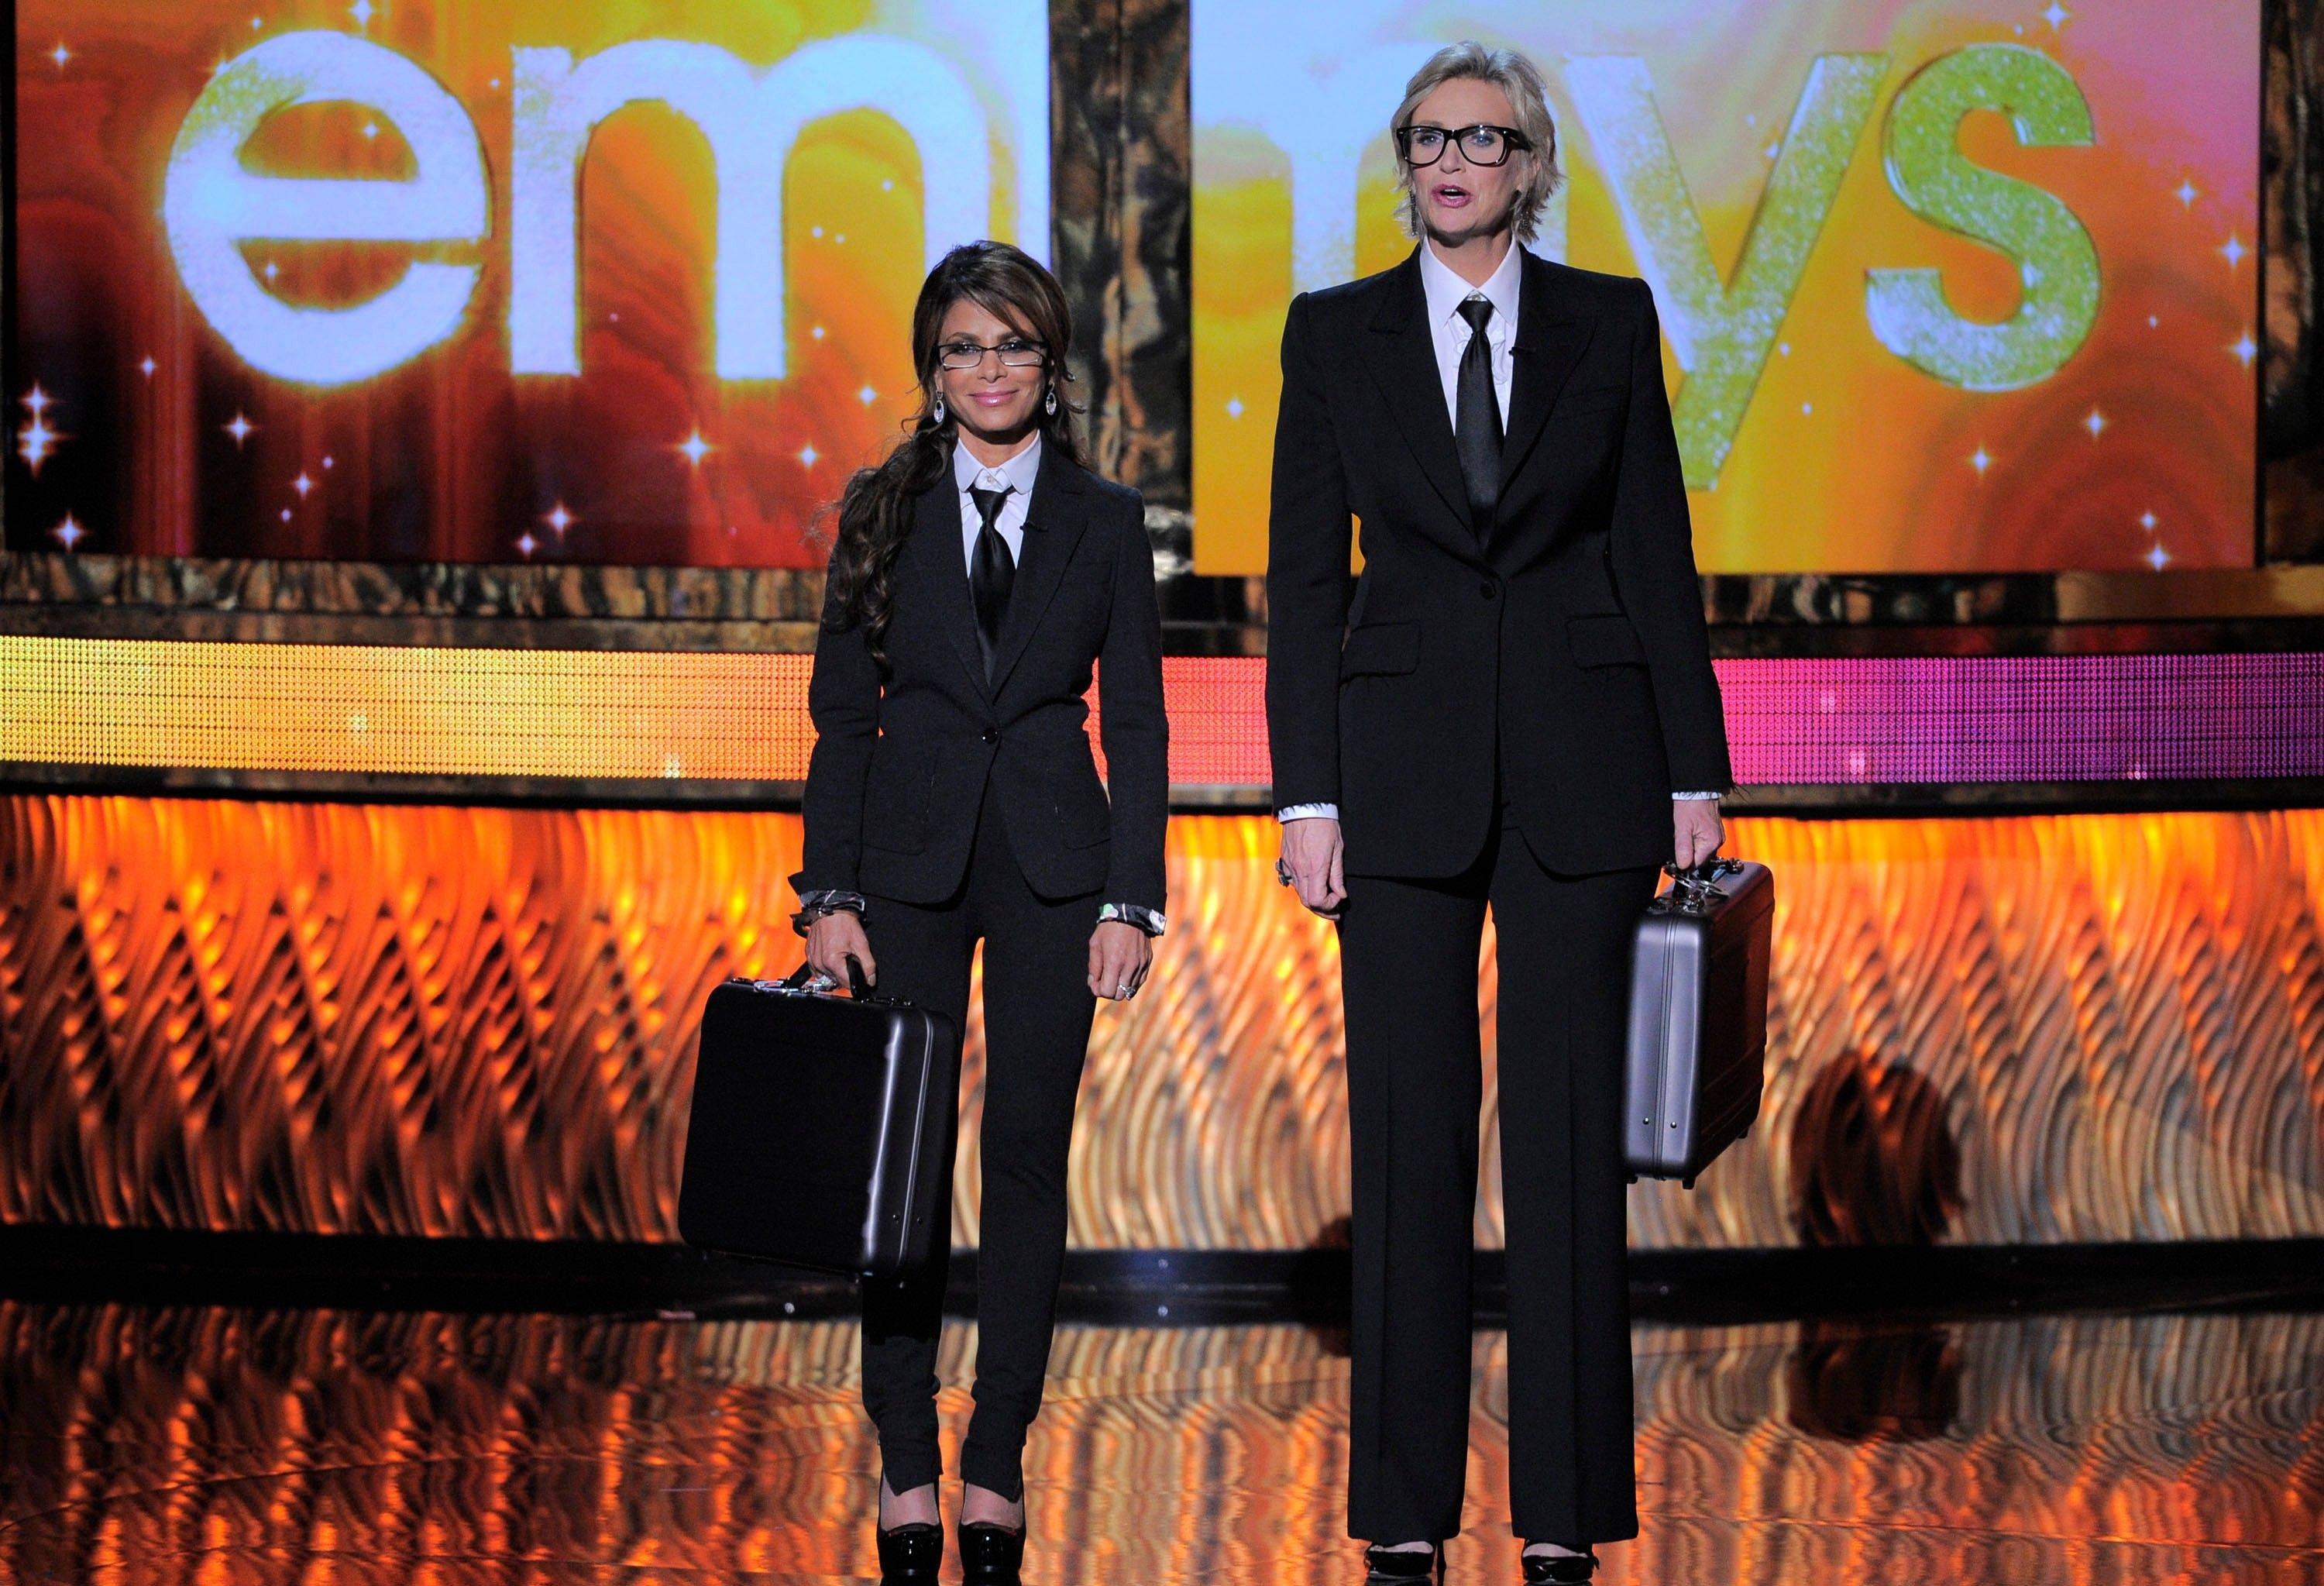 Paula Abdul, left, and host Jane Lynch have a little fun during the Emmys.